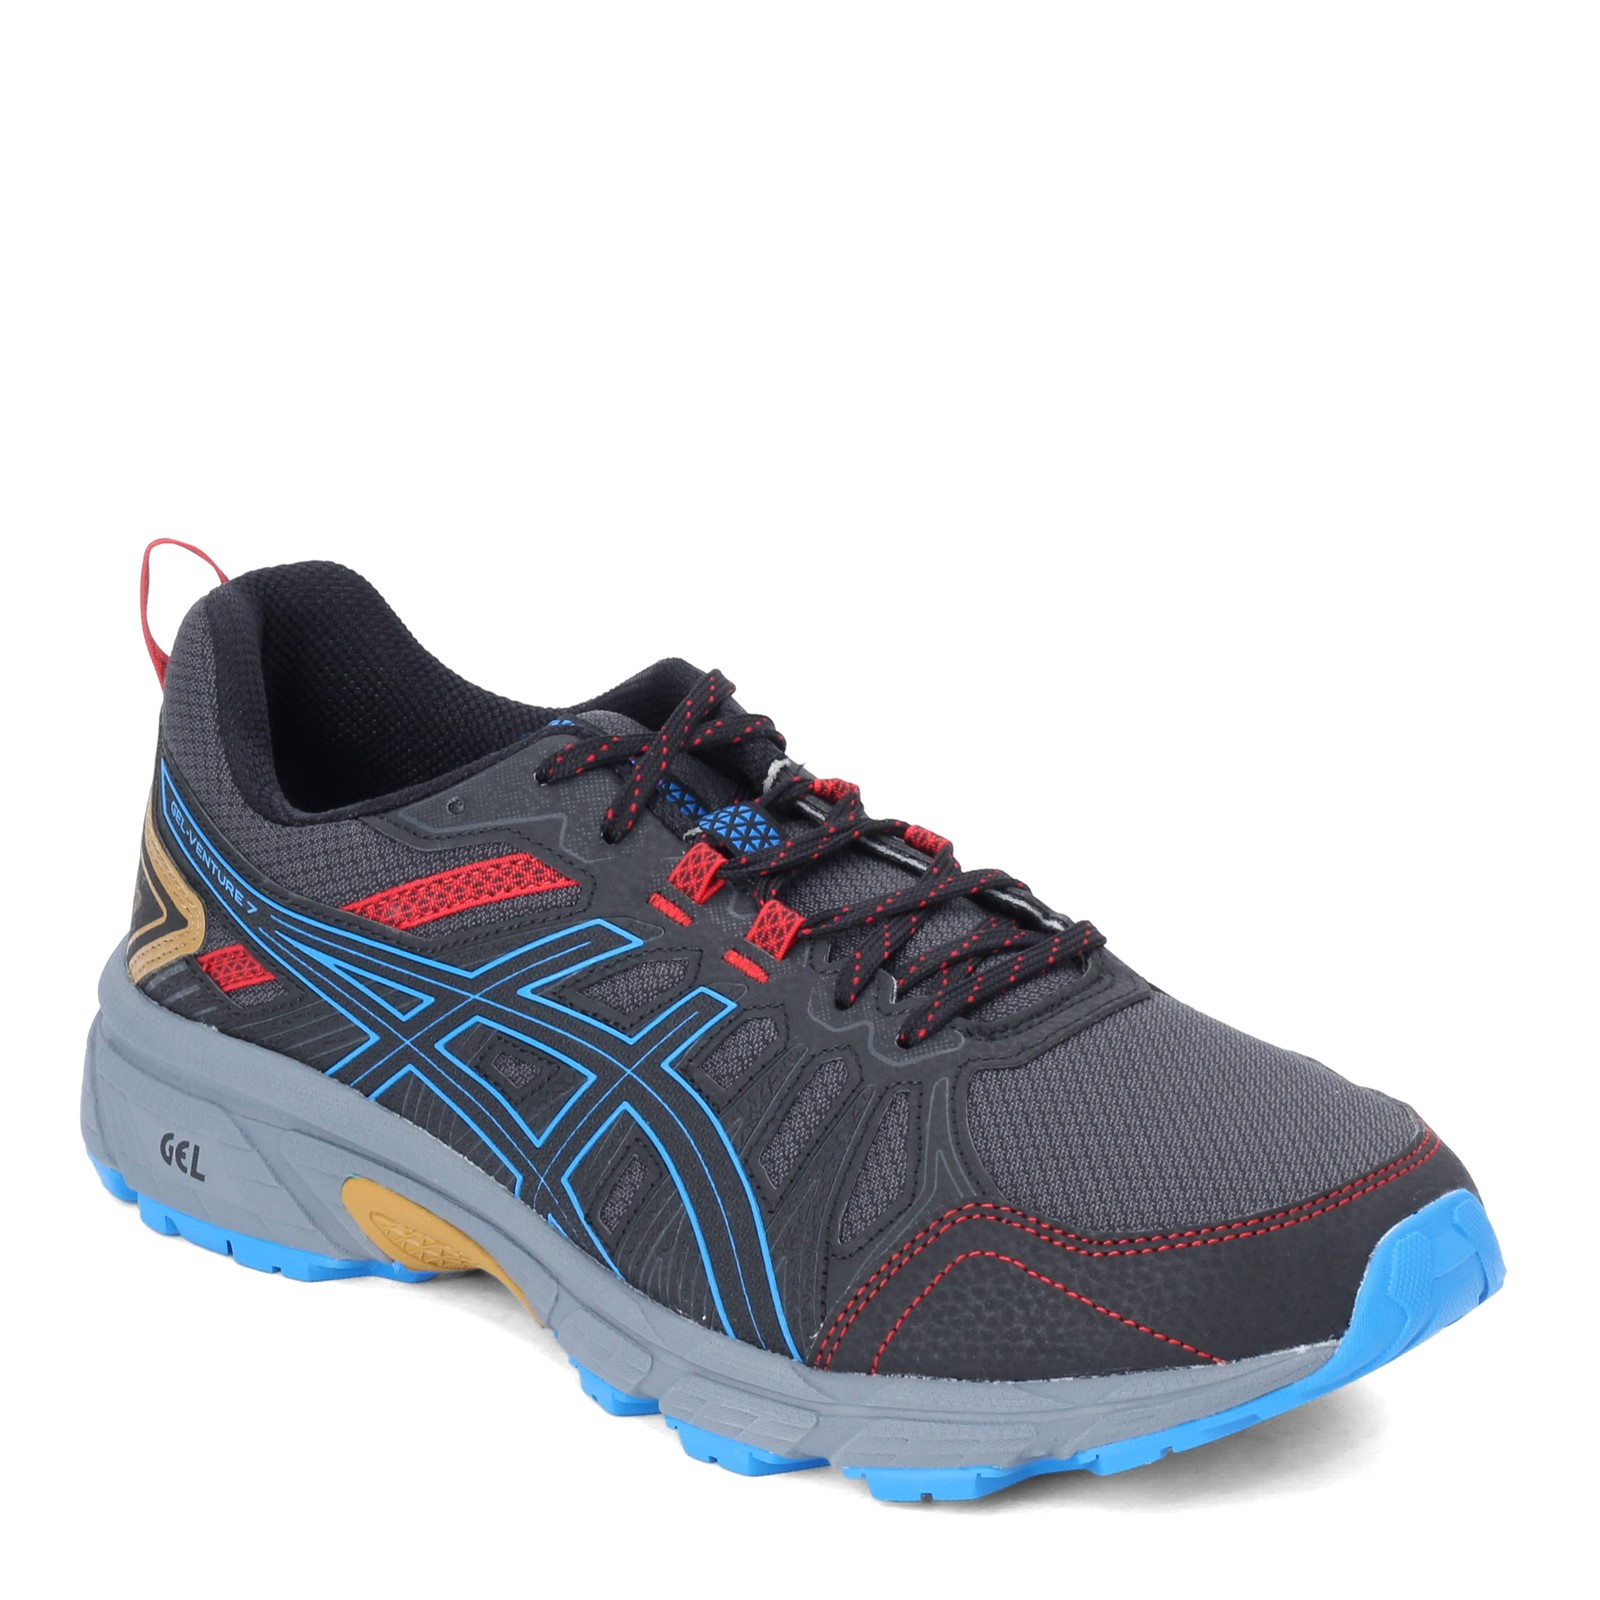 extra wide trail running shoes